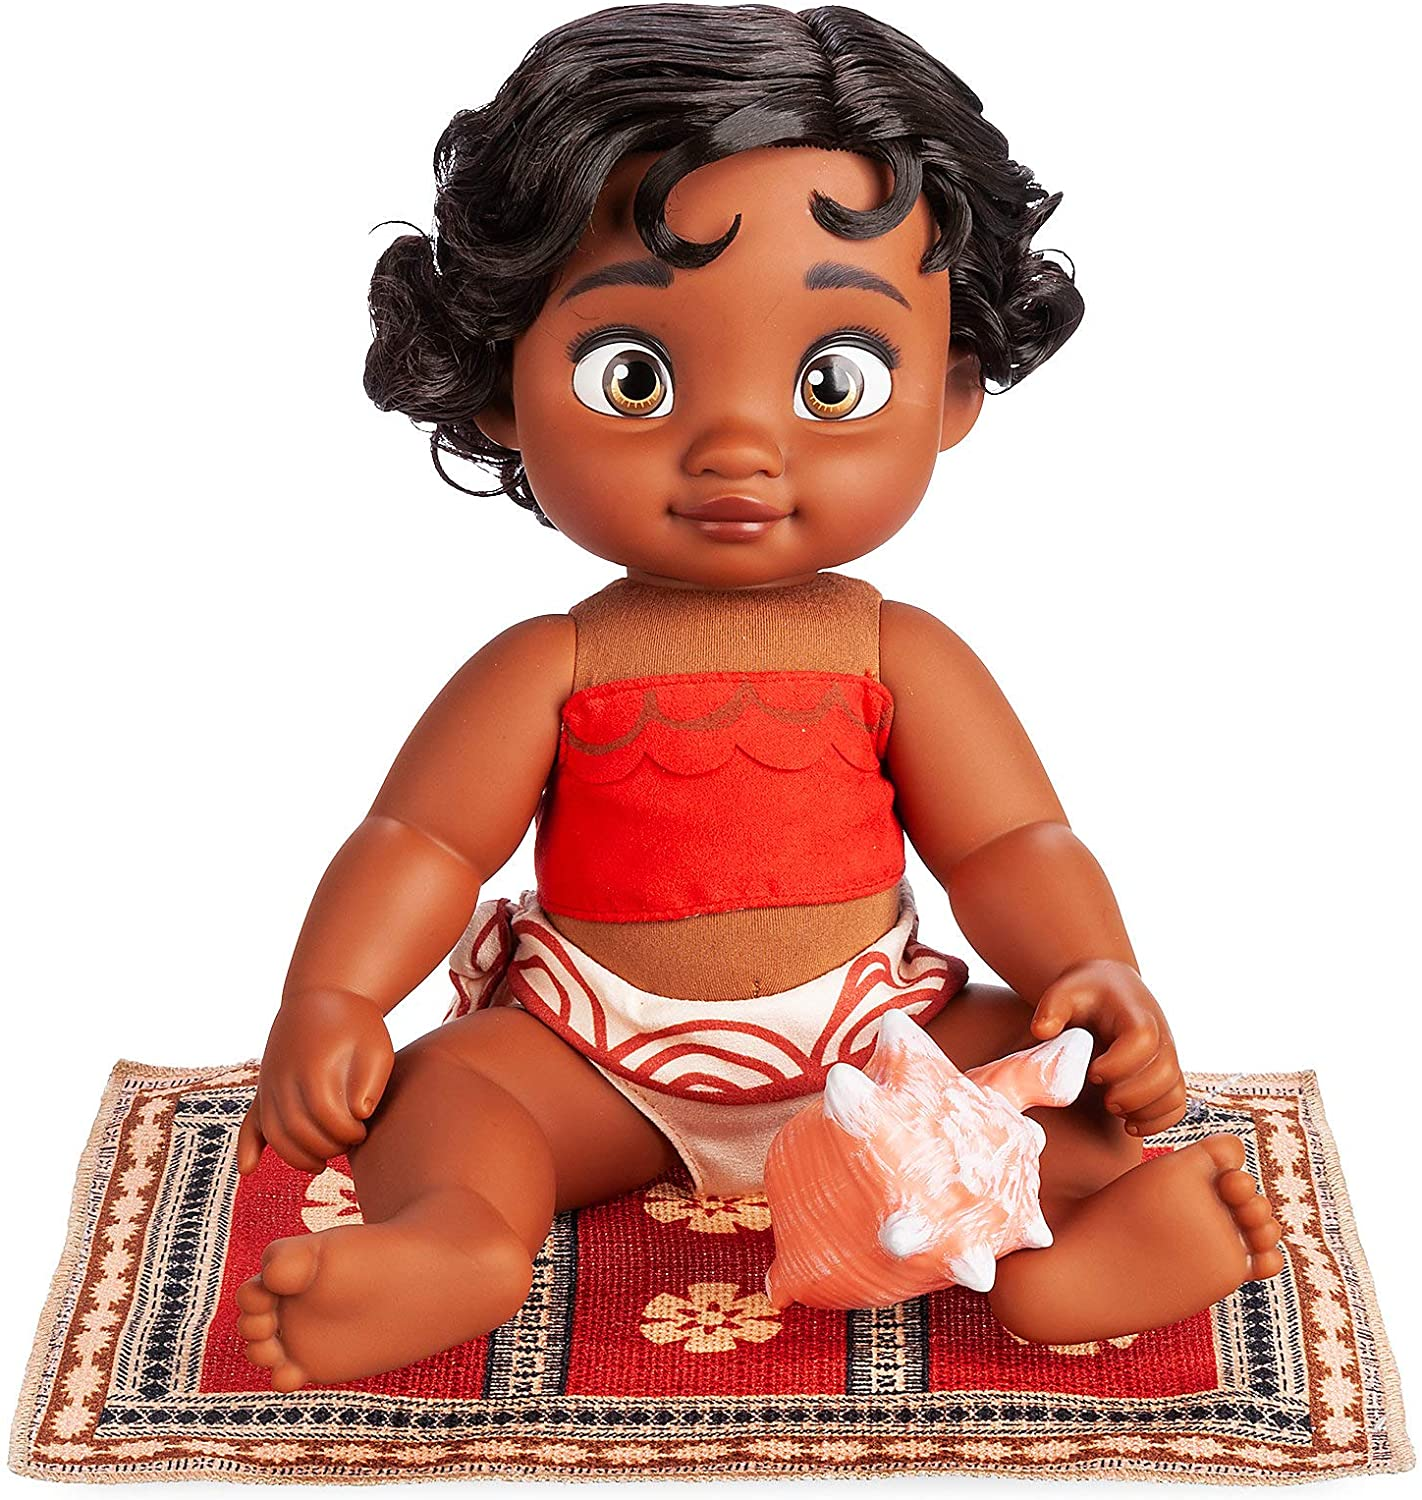 Bath time baby doll - Yound Moana